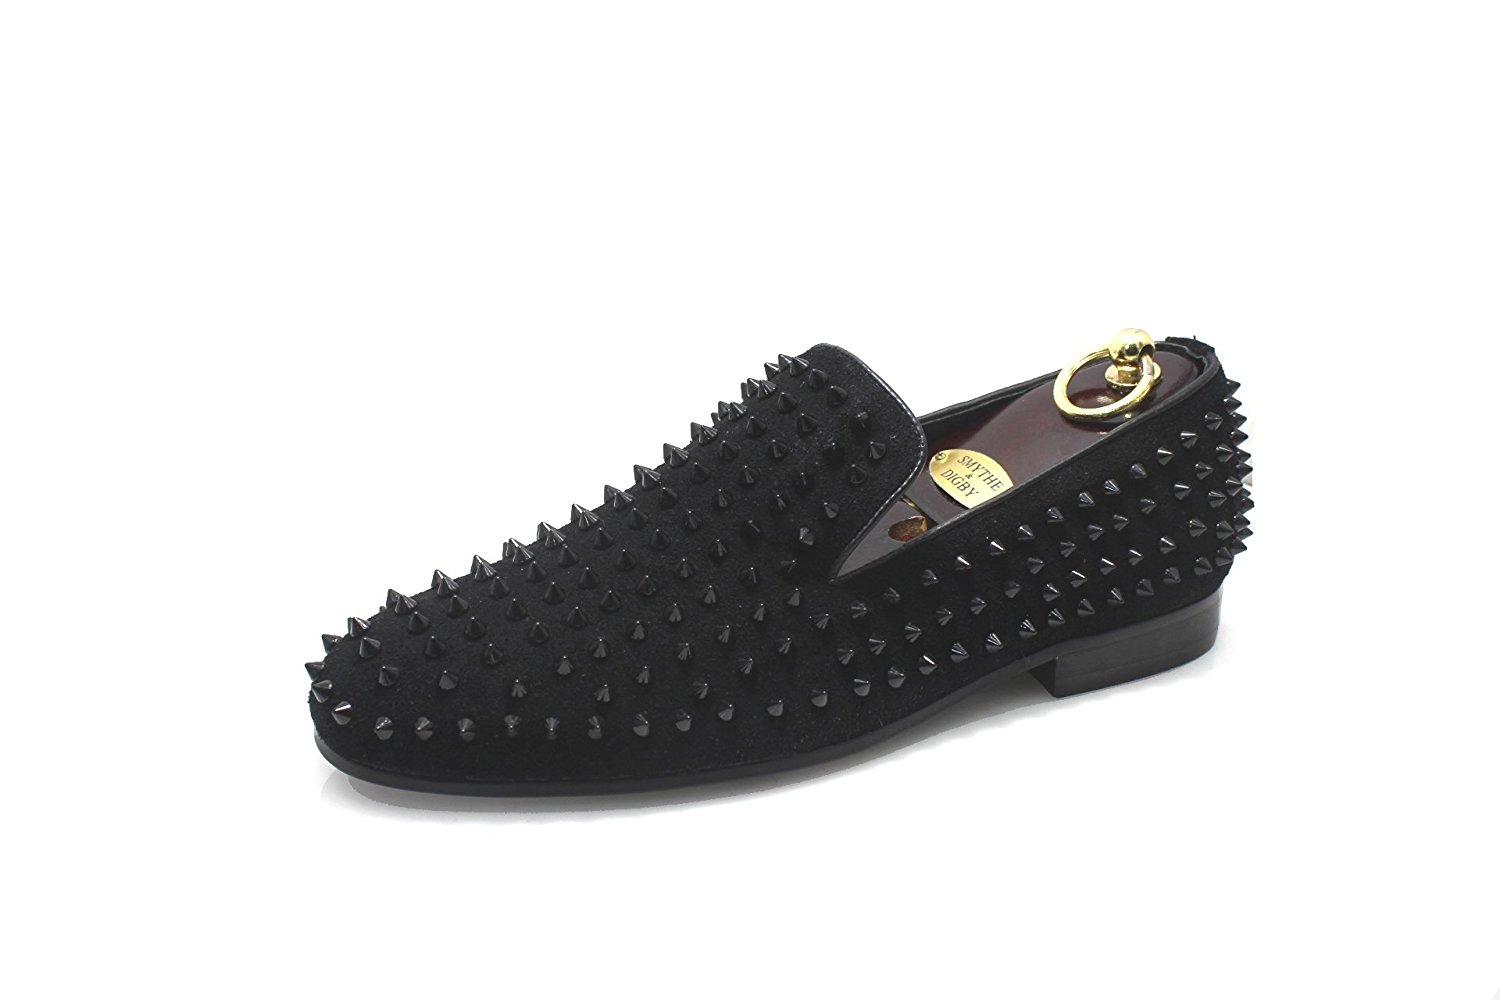 4927b2e73ecd Get Quotations · SMYTHE   DIGBY Men s Spiked Studded Black Leather Loafers